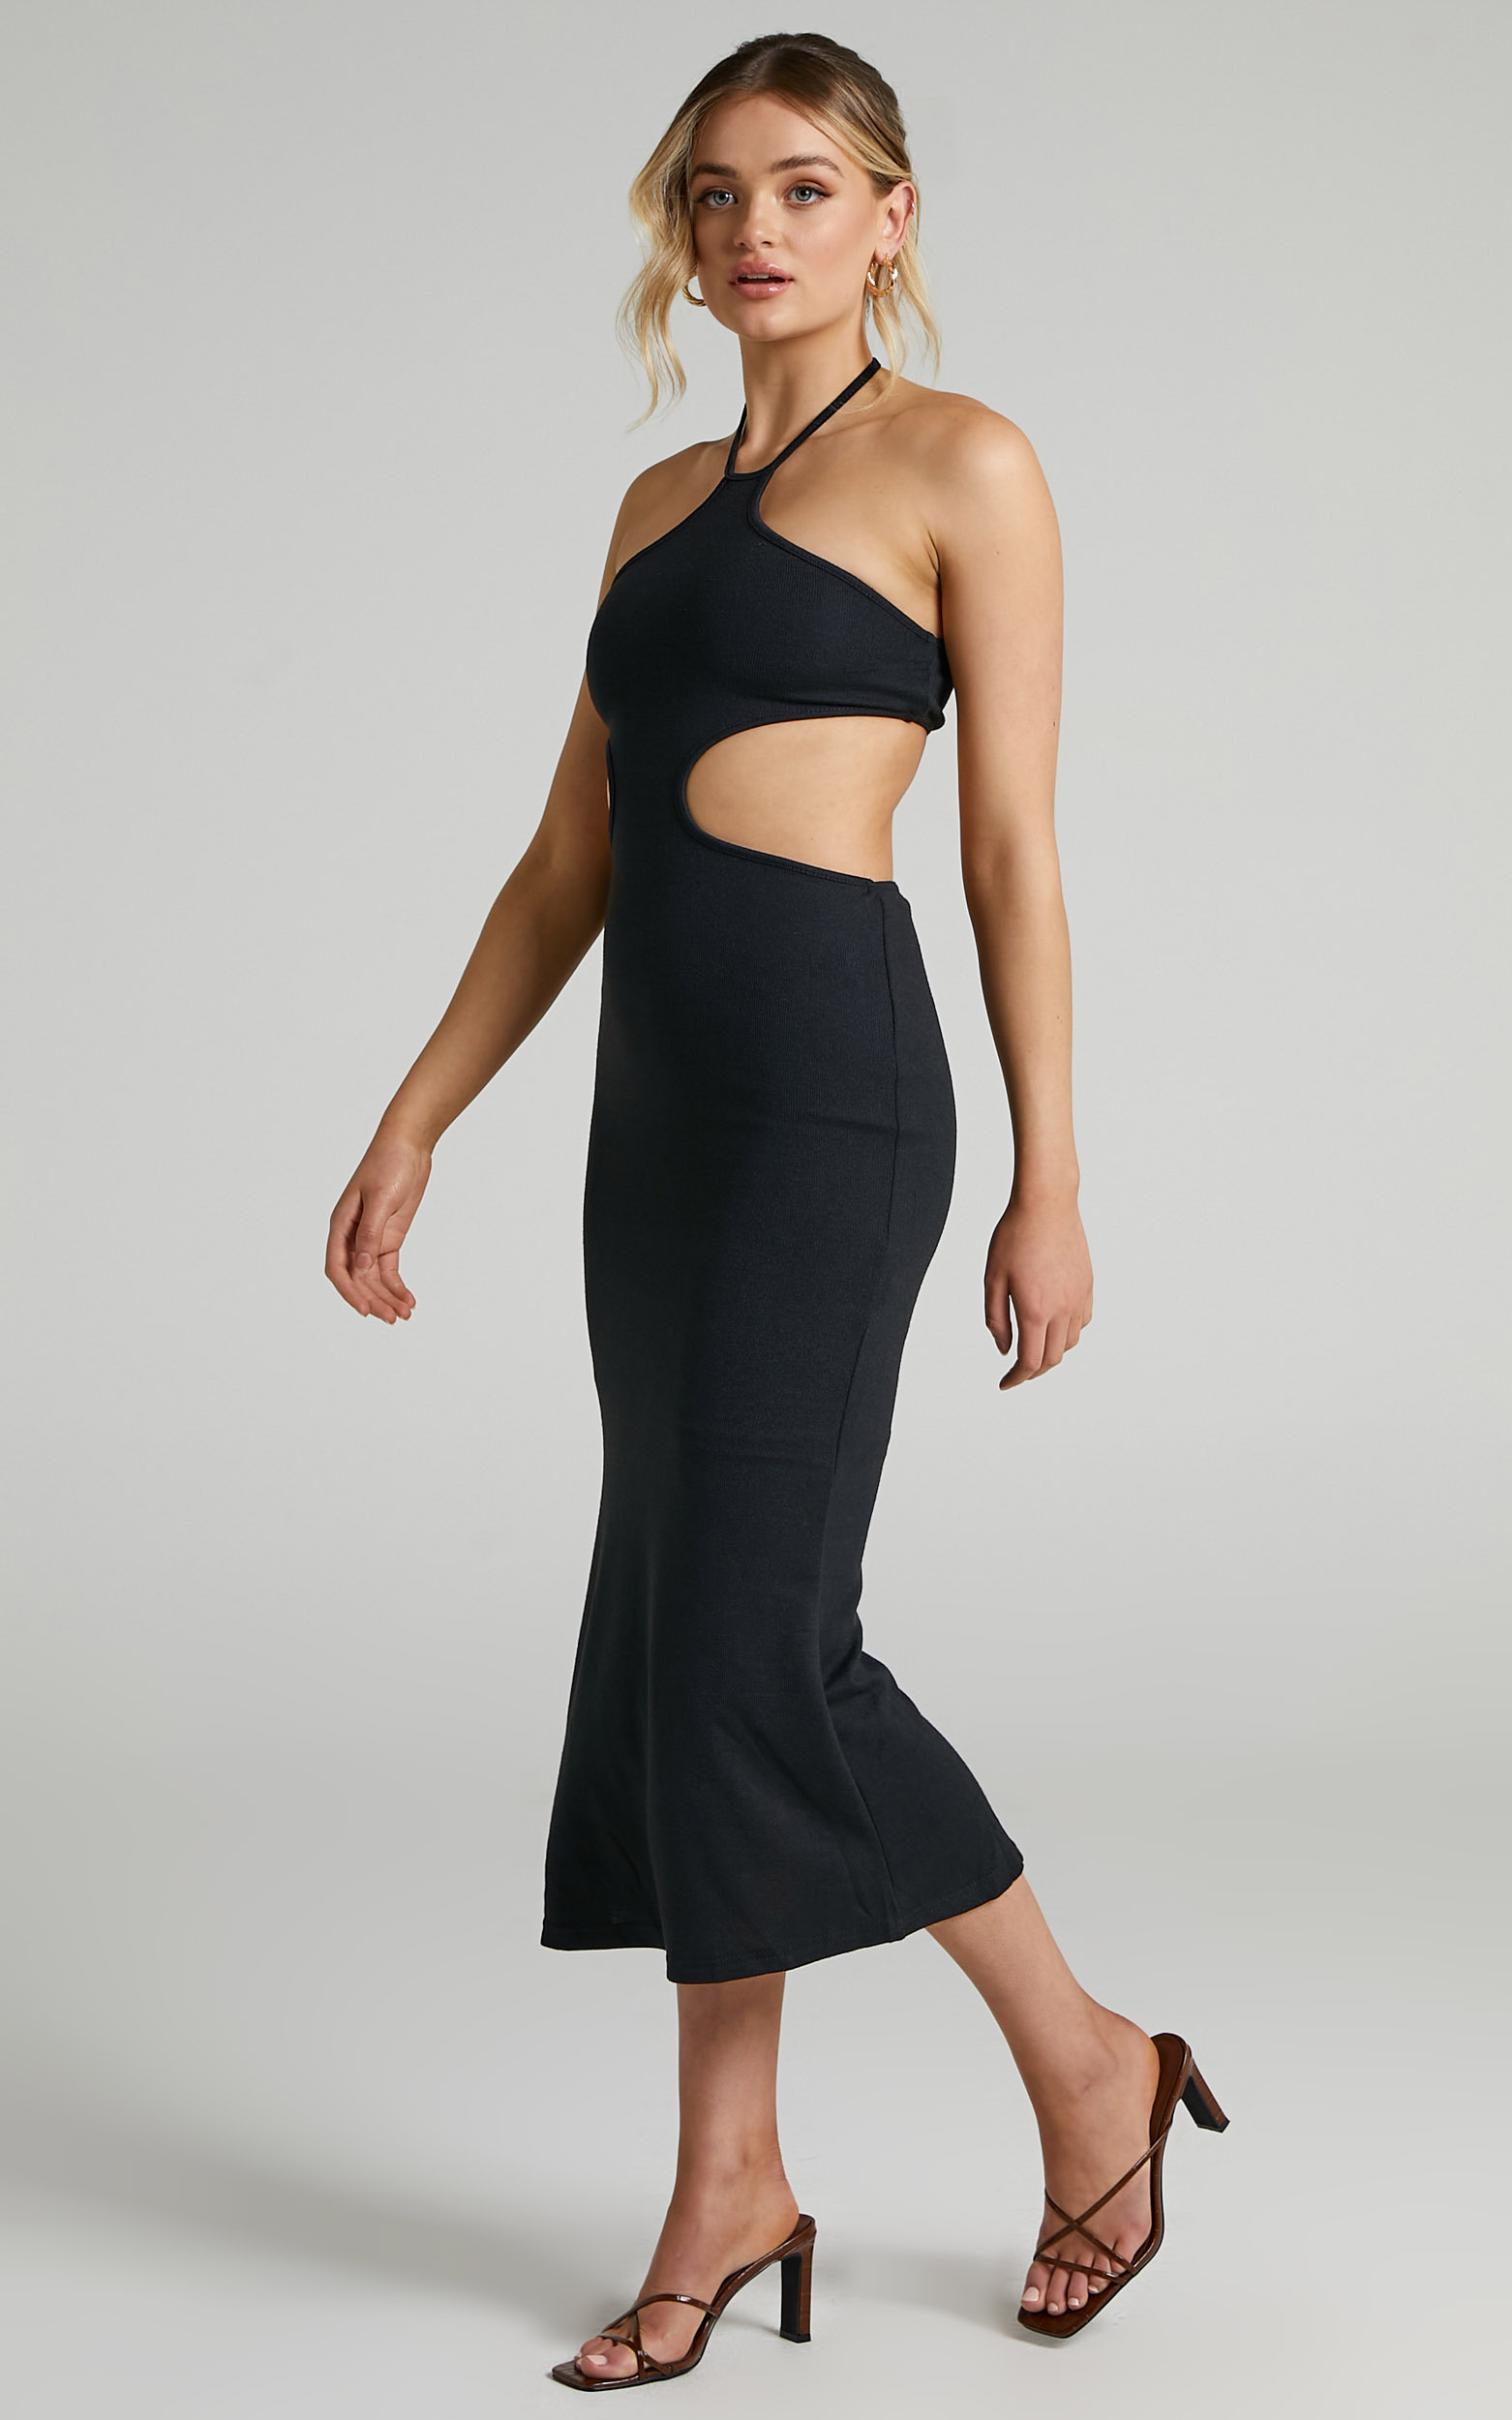 Saskia Side Cut Out Midi Dress in Black - 06, BLK1, hi-res image number null